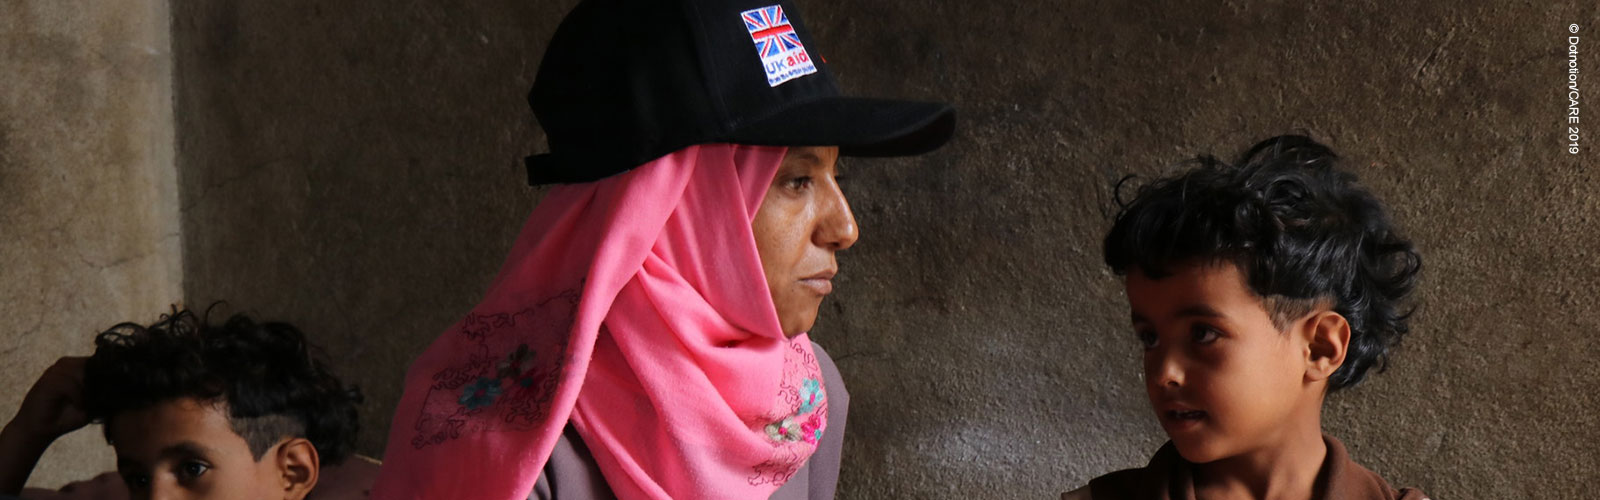 A woman in Yemen wearing a UK Aid cap, with two boys